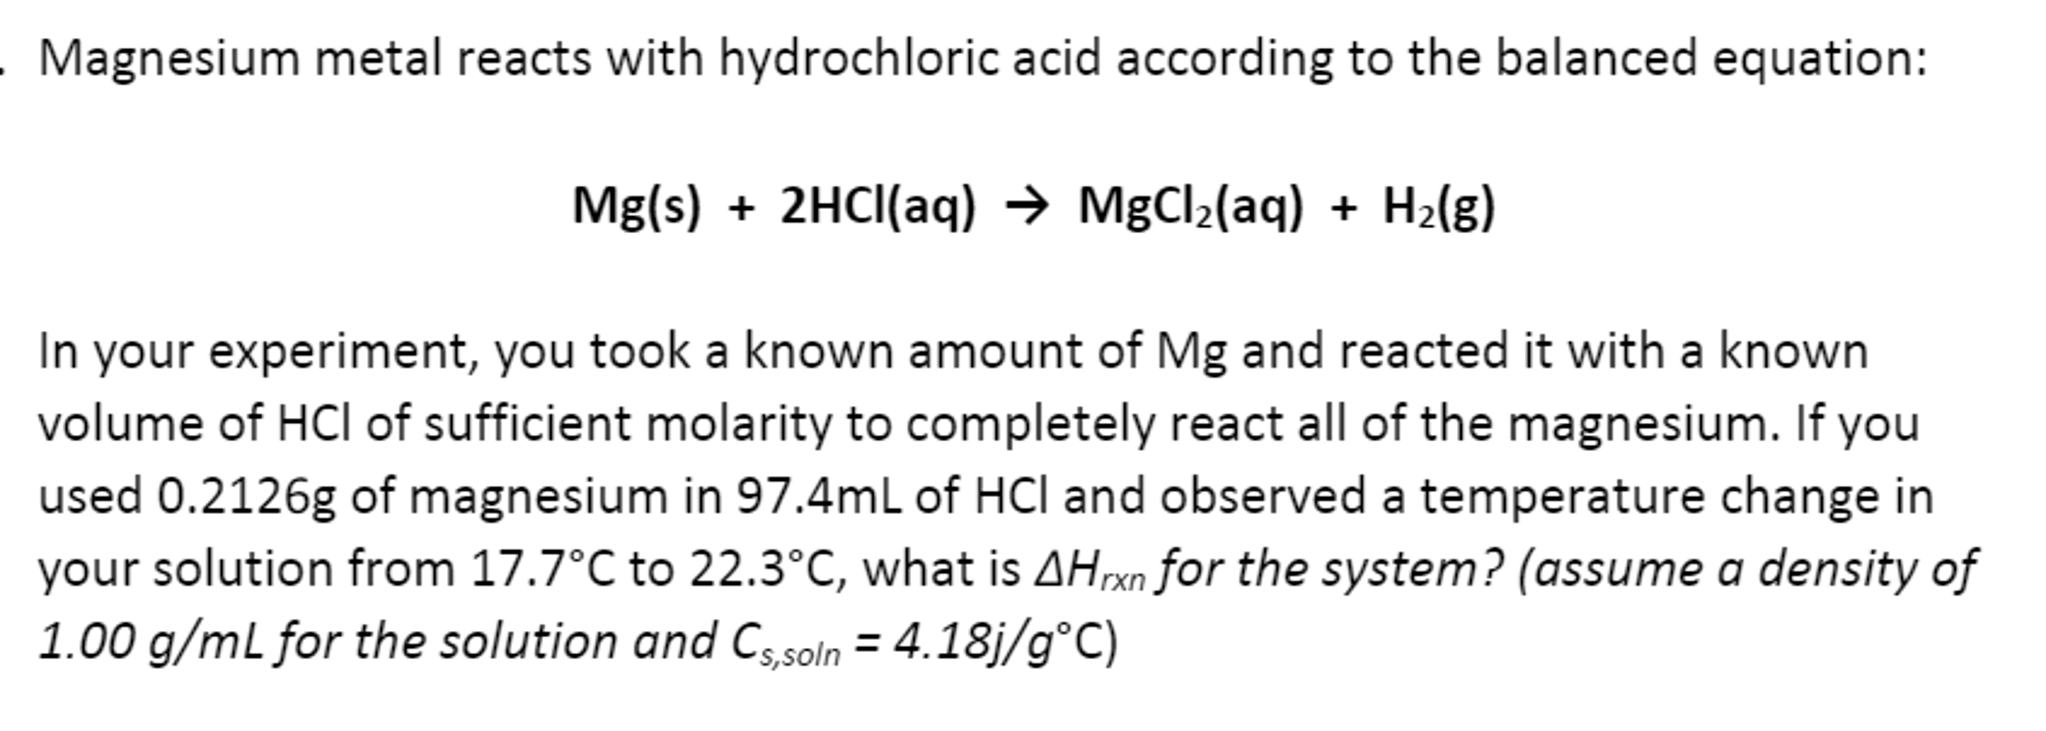 Magnesium Metal Reacts With Hydrochloric Acid Acco